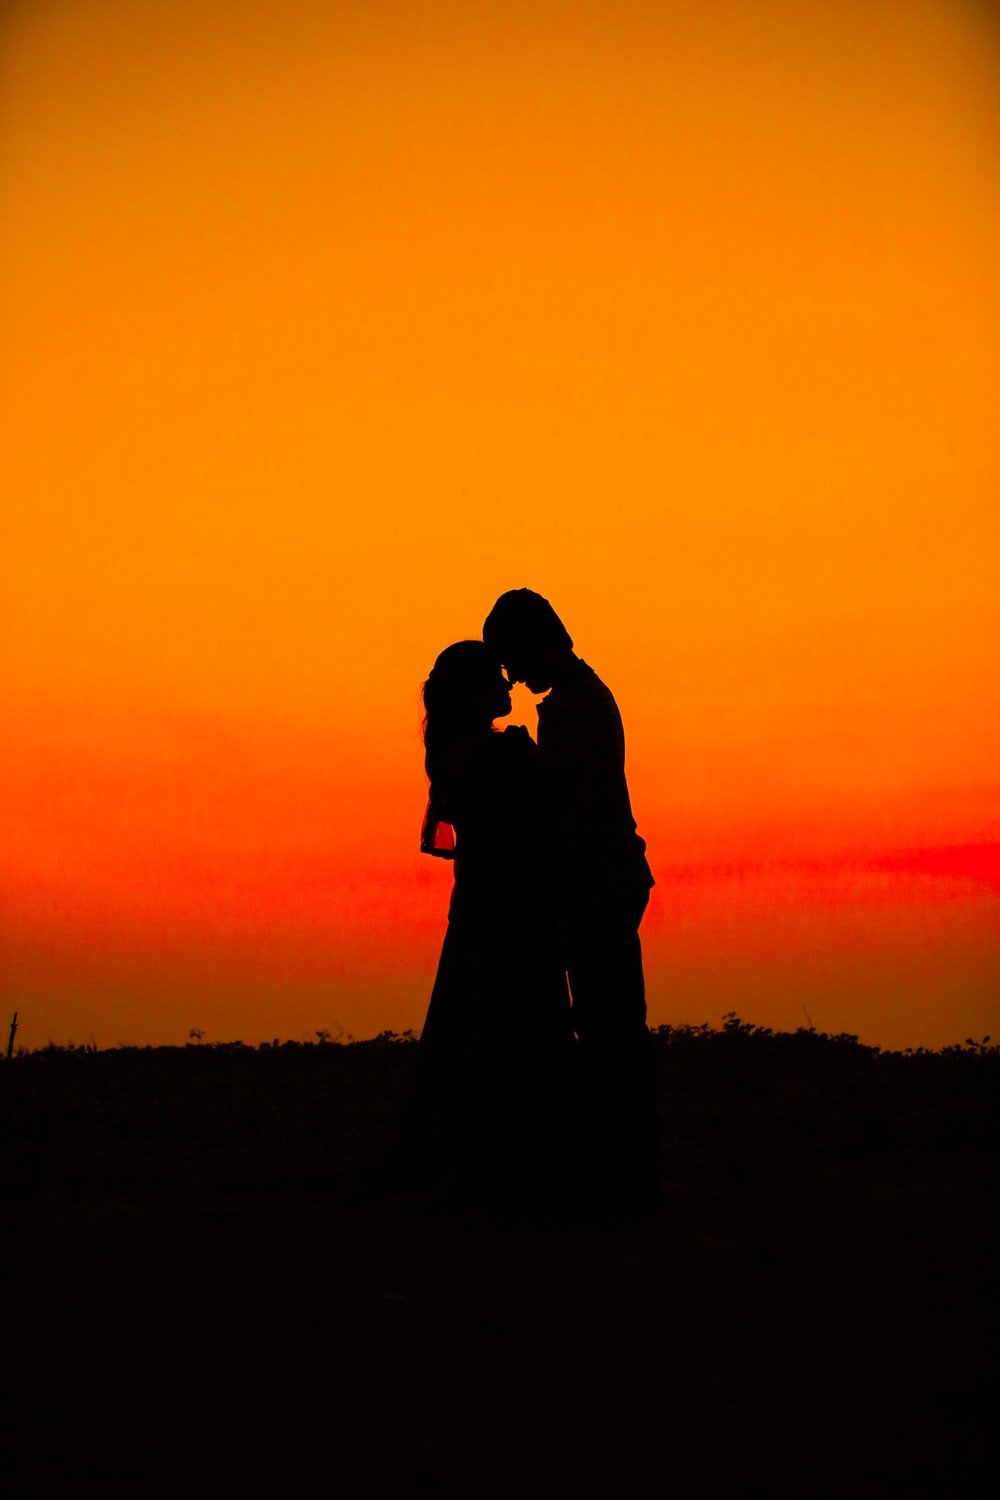 silhouette of man and woman during sunset